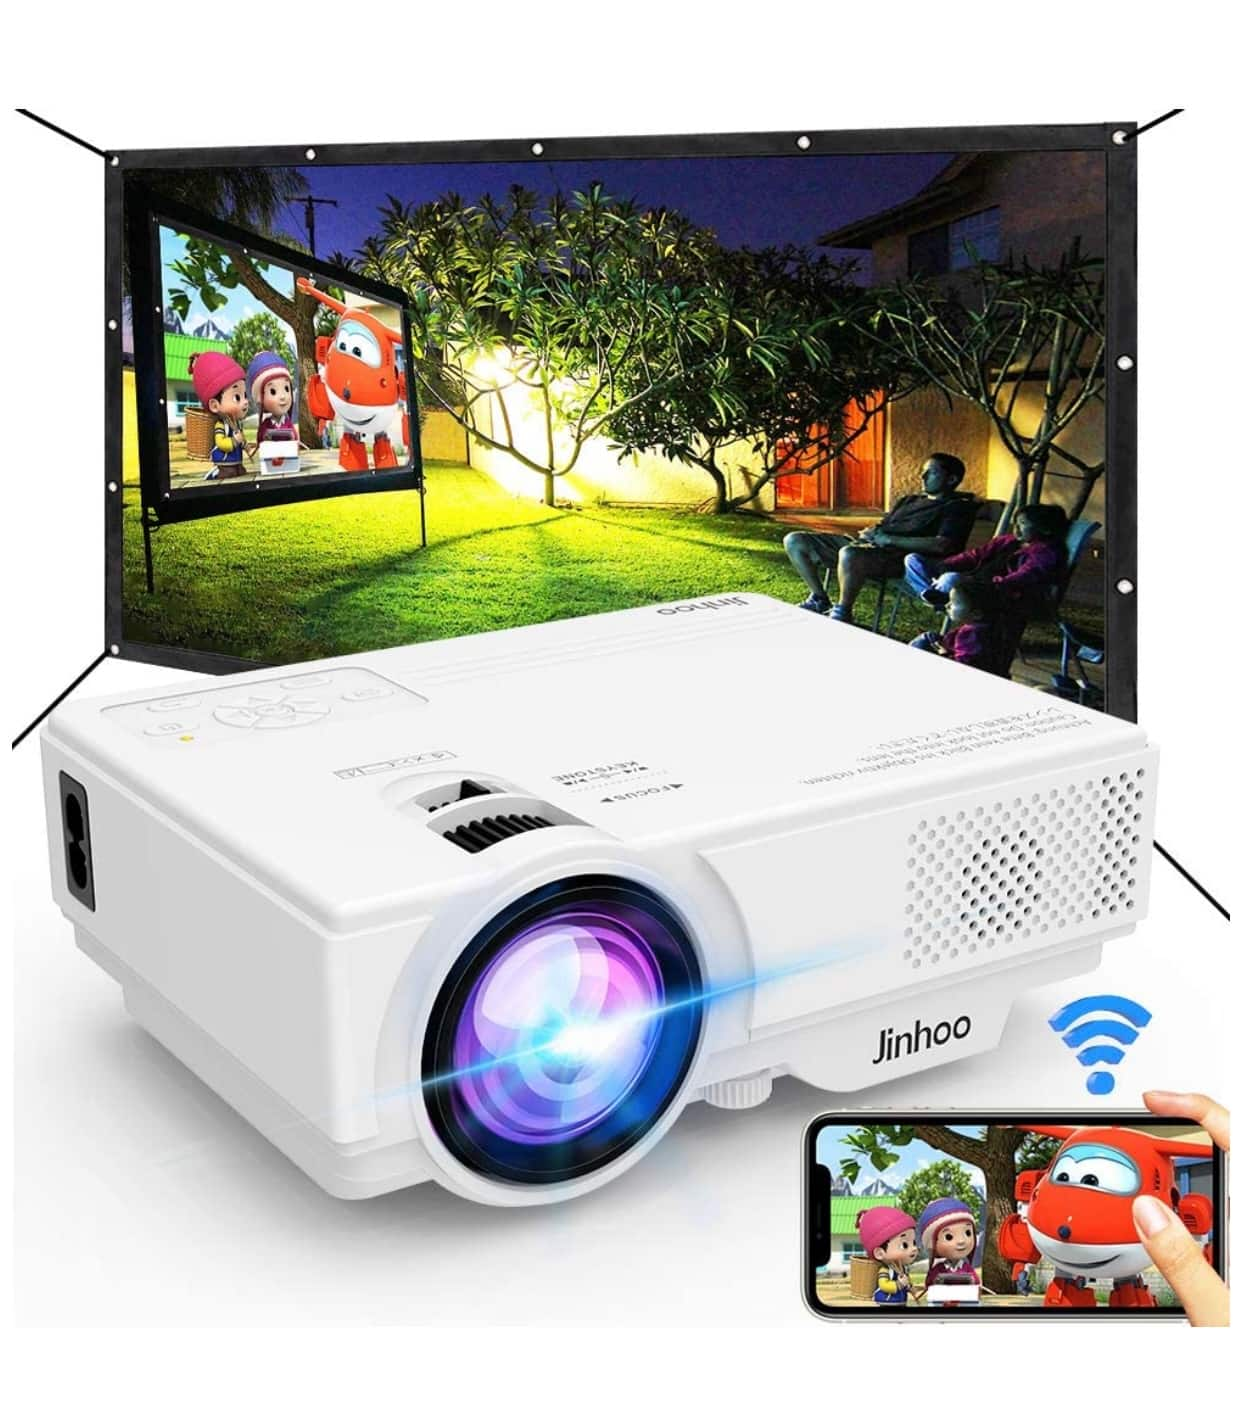 WiFi Mini Projector, 2020 Latest Update 5500 Lux $99.89